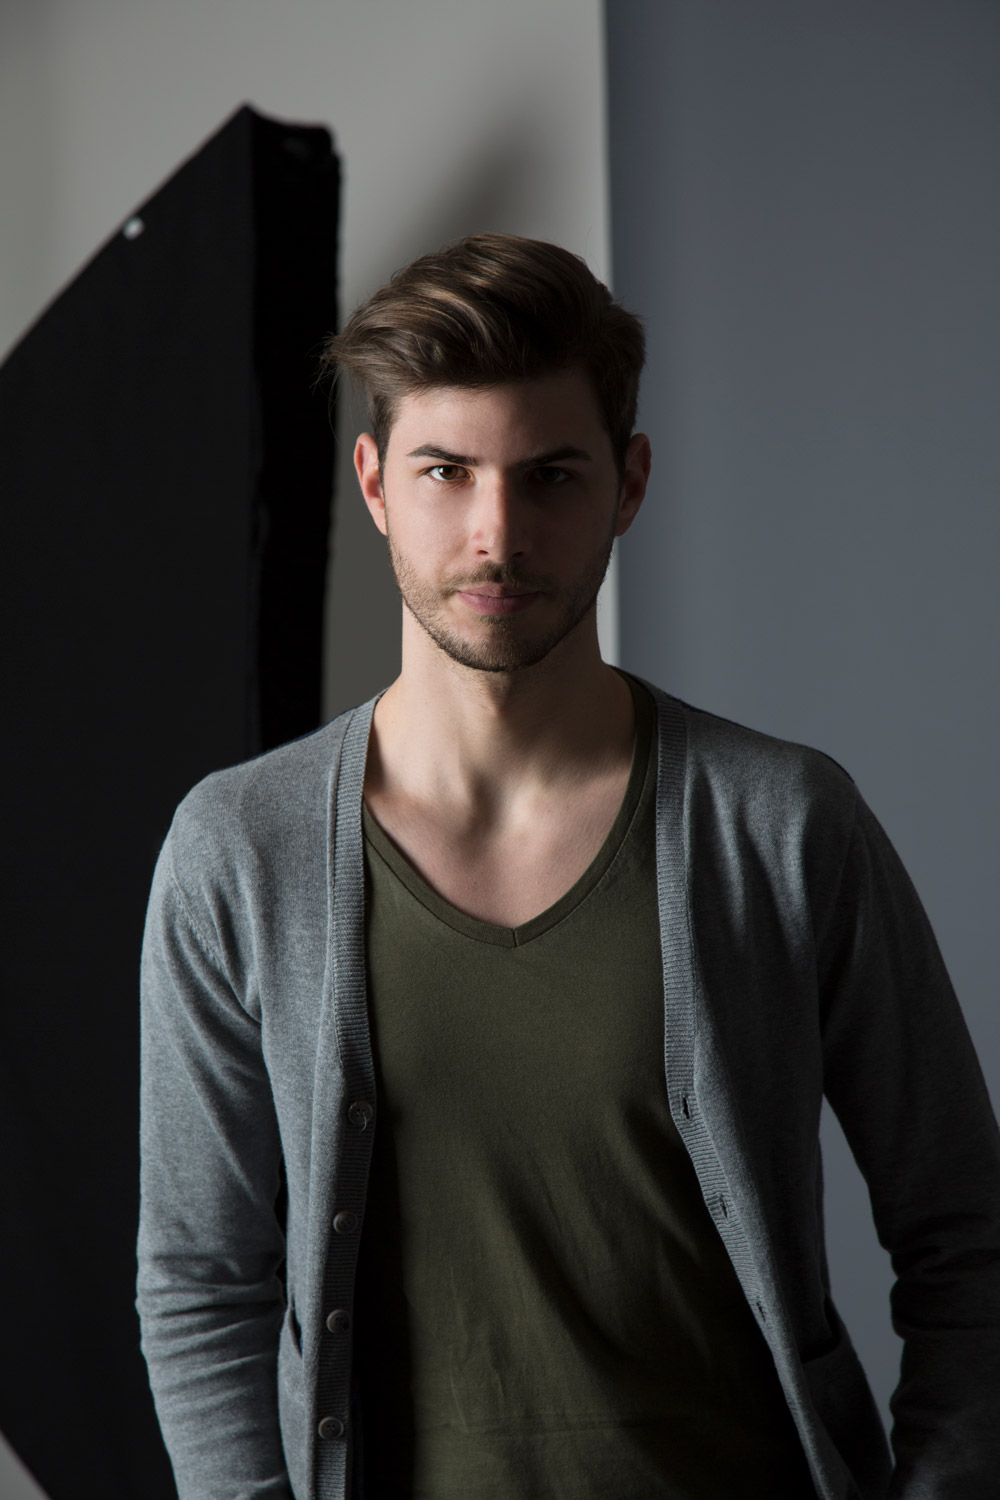 Emiliano P - modello Roma e Milano per shooting, sfilate, cataloghi, spot, adv - I am management